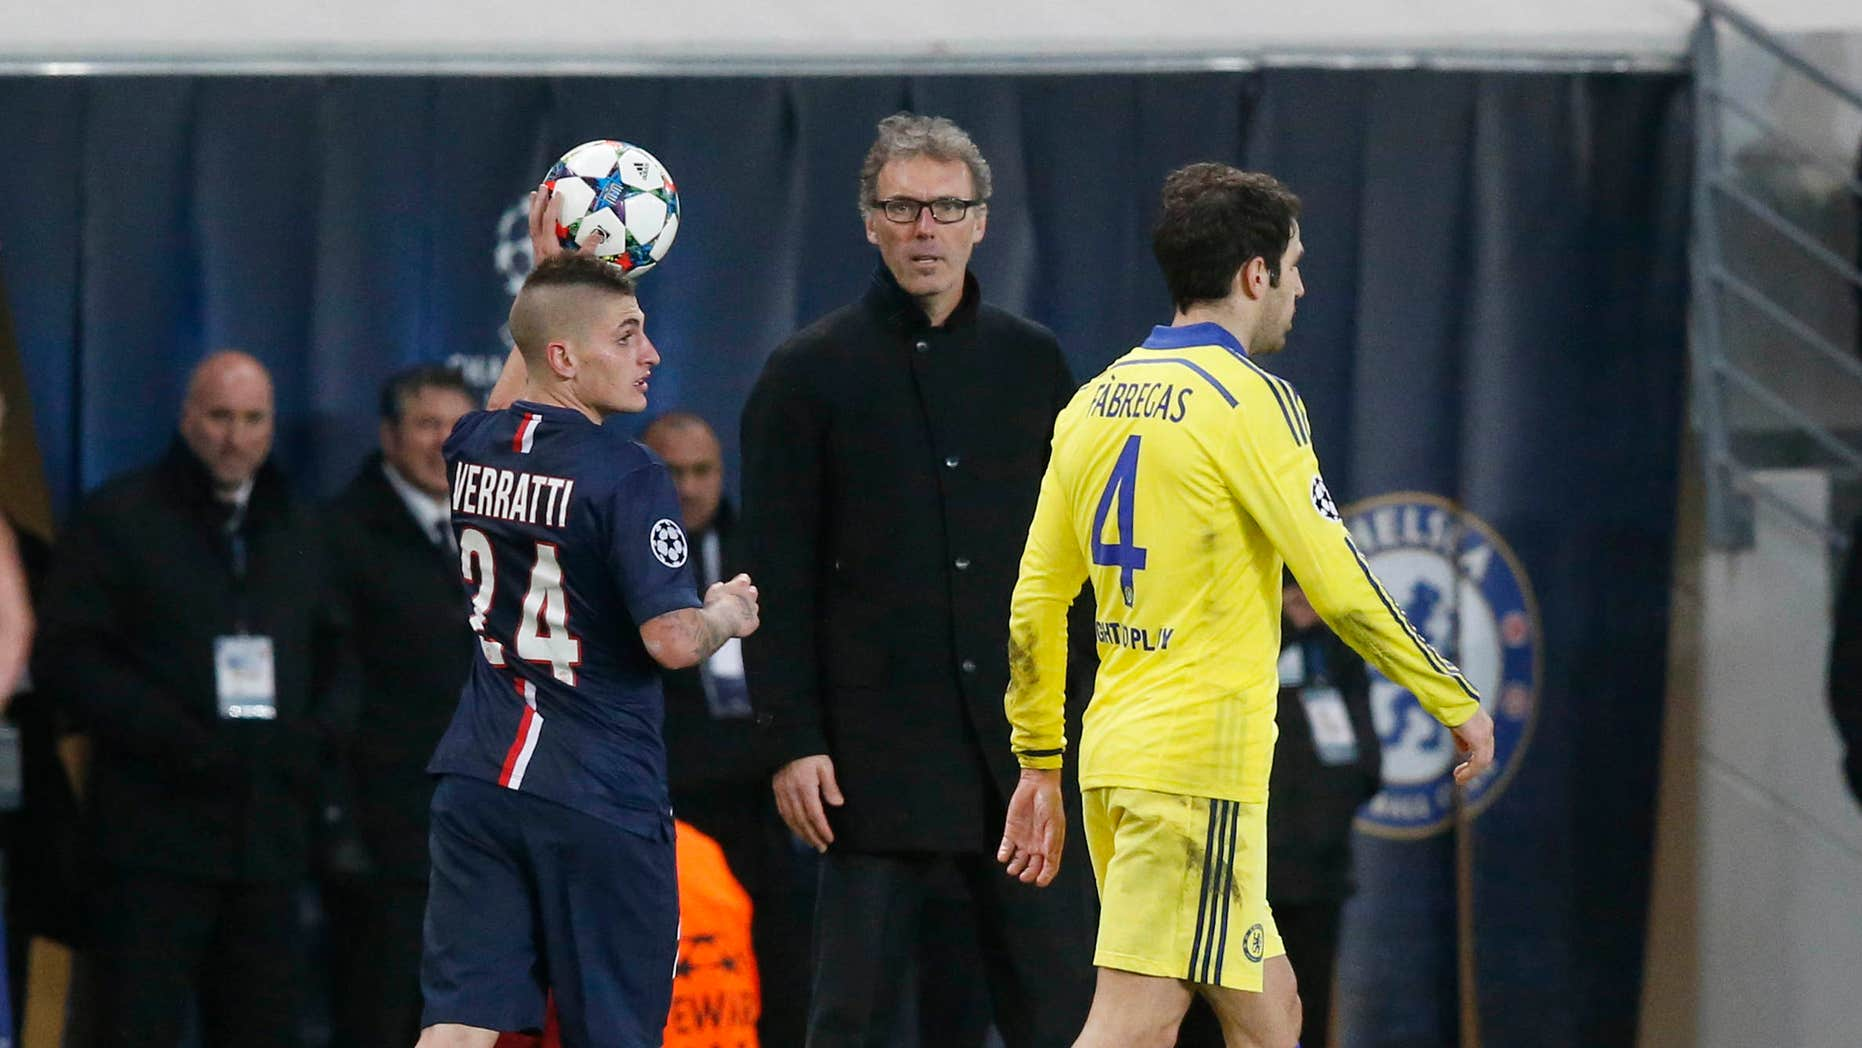 Feb. 17, 2015: PSG's Marco Verratti prepares a throw-in while PSG's head coach Laurent Blanc, center, looks on and Chelsea's Cesc Fabregas, right, passes by during the Champions League round of 16 first leg soccer match between Paris Saint Germain and Chelsea.